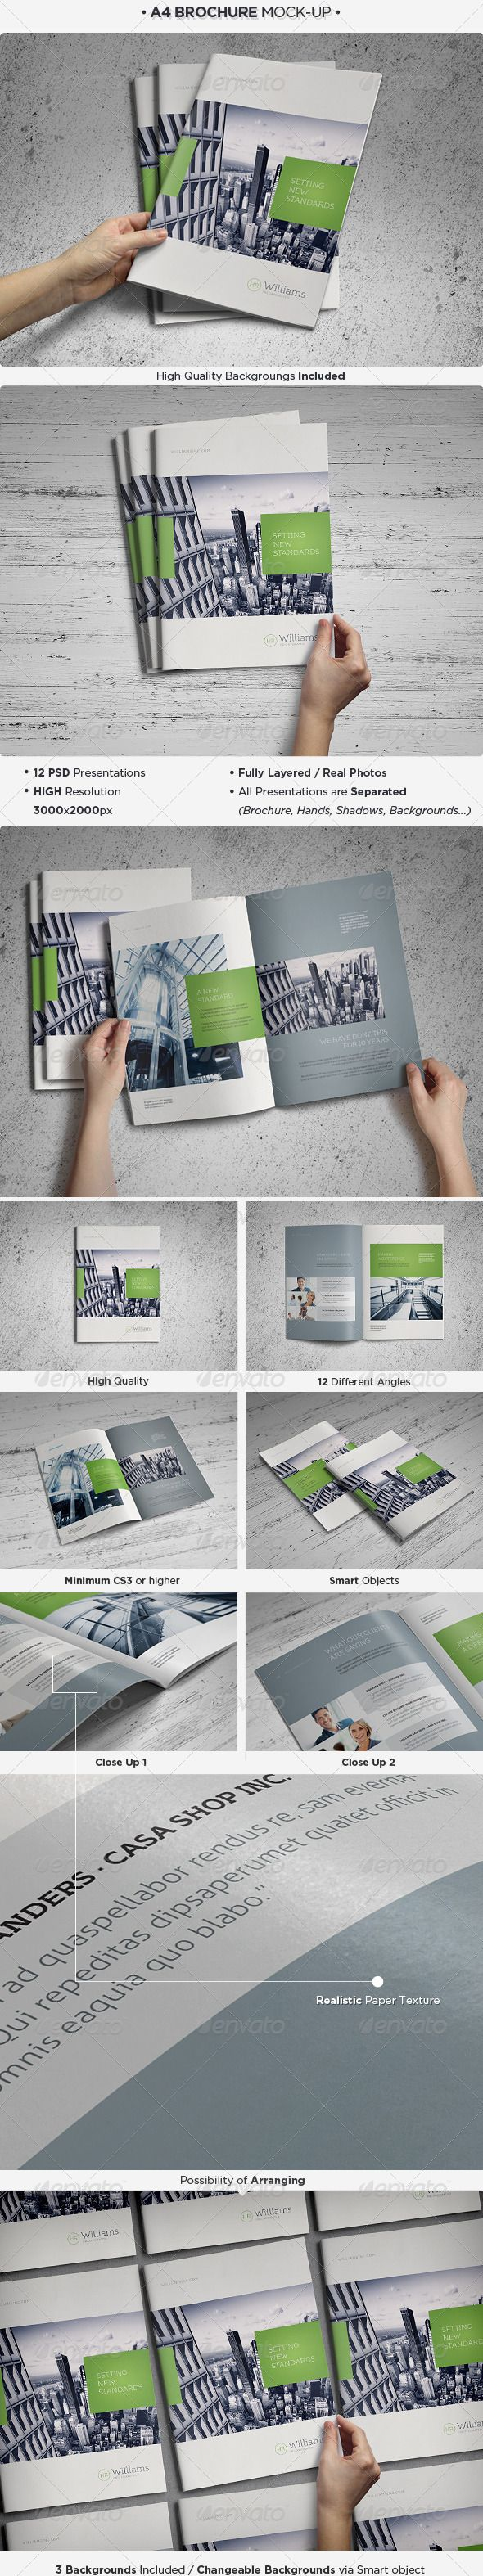 A4 Brochure / Catalog Mock-Up : Check out this great #graphicriver item 'A4 Brochure / Catalog Mock-Up' http://graphicriver.net/item/a4-brochure-catalog-mockup/4236480?ref=25EGY